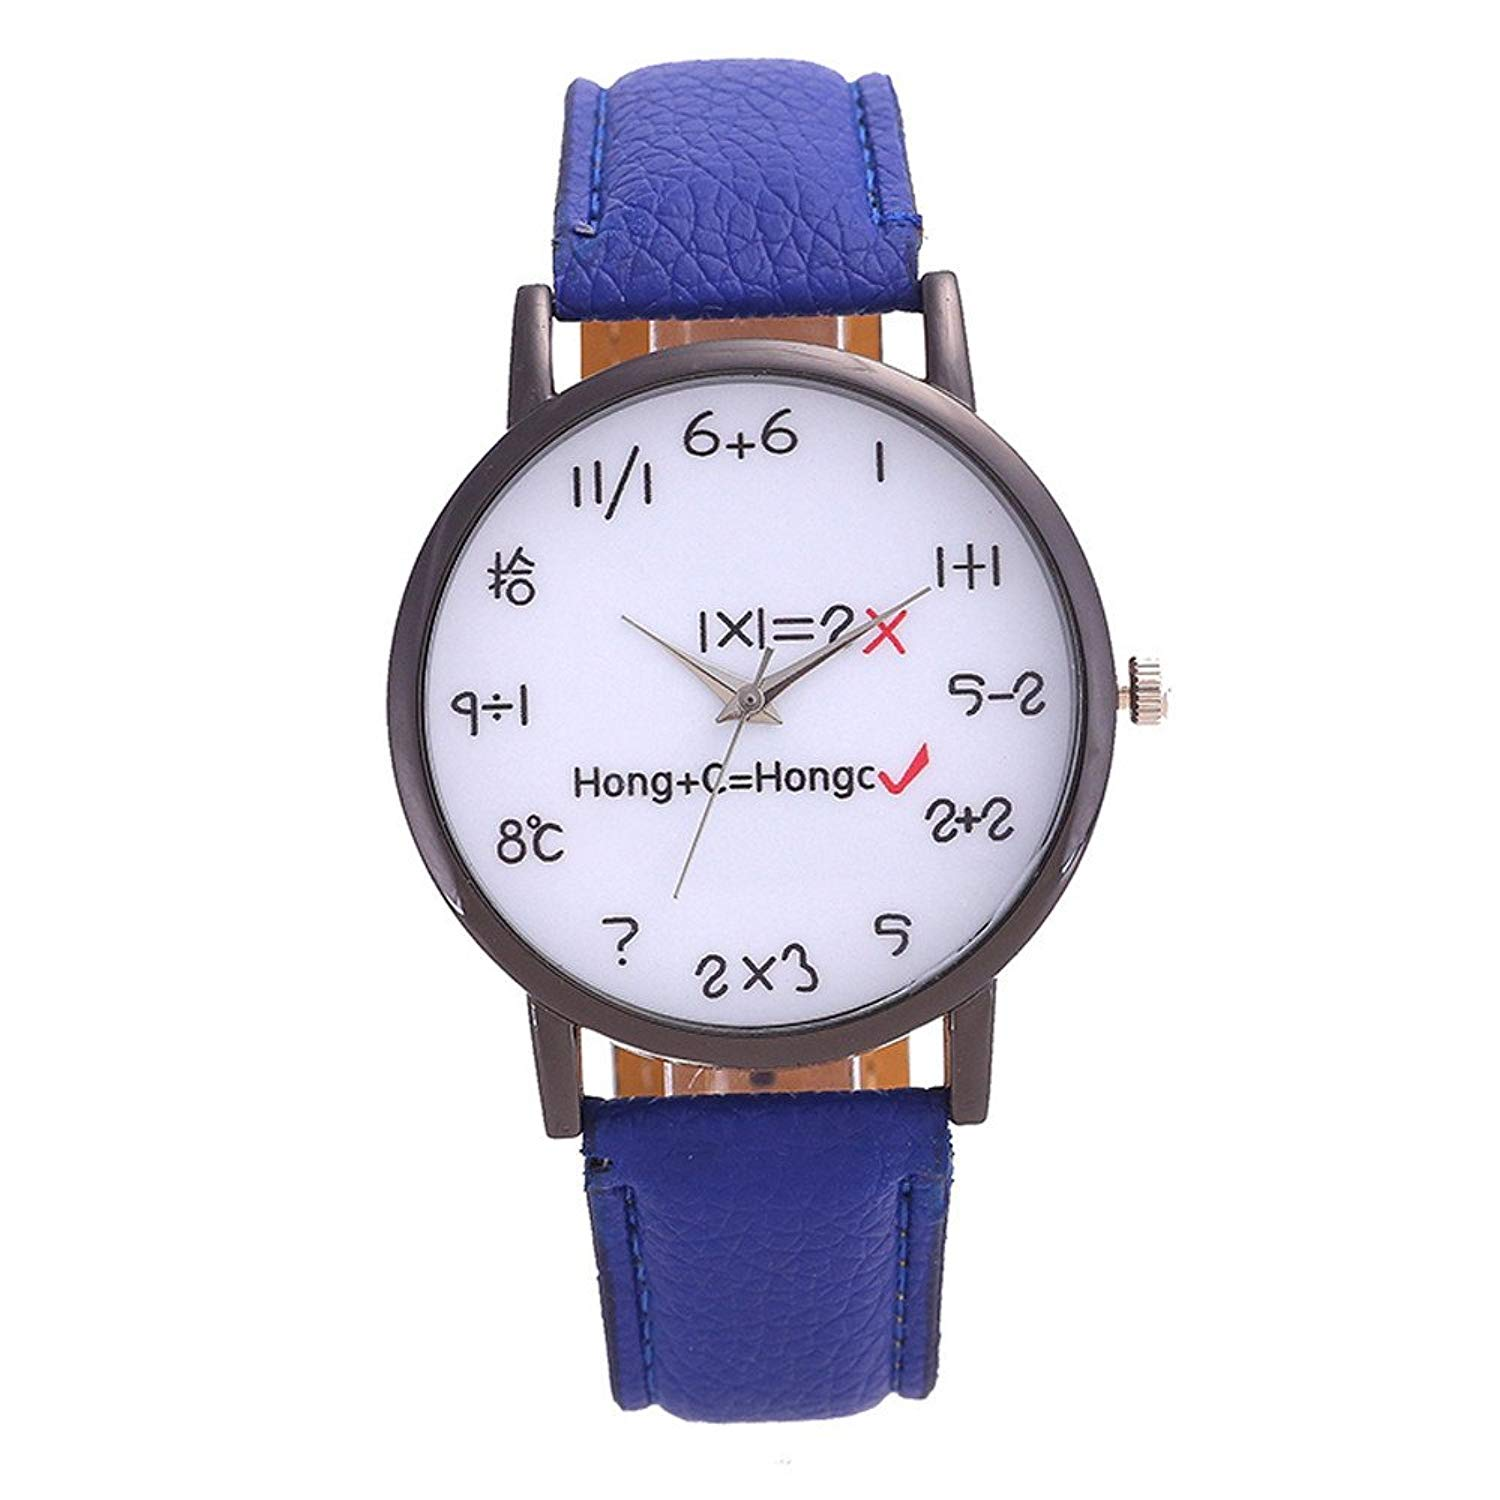 Watches For Women Men,POTO Unisex Quartz Women Watches Retro Cute Formula Aolly Round Wristwatch Womens Mens Leather Analog Quartz Wrist Watch For Teens Clearance On Sales